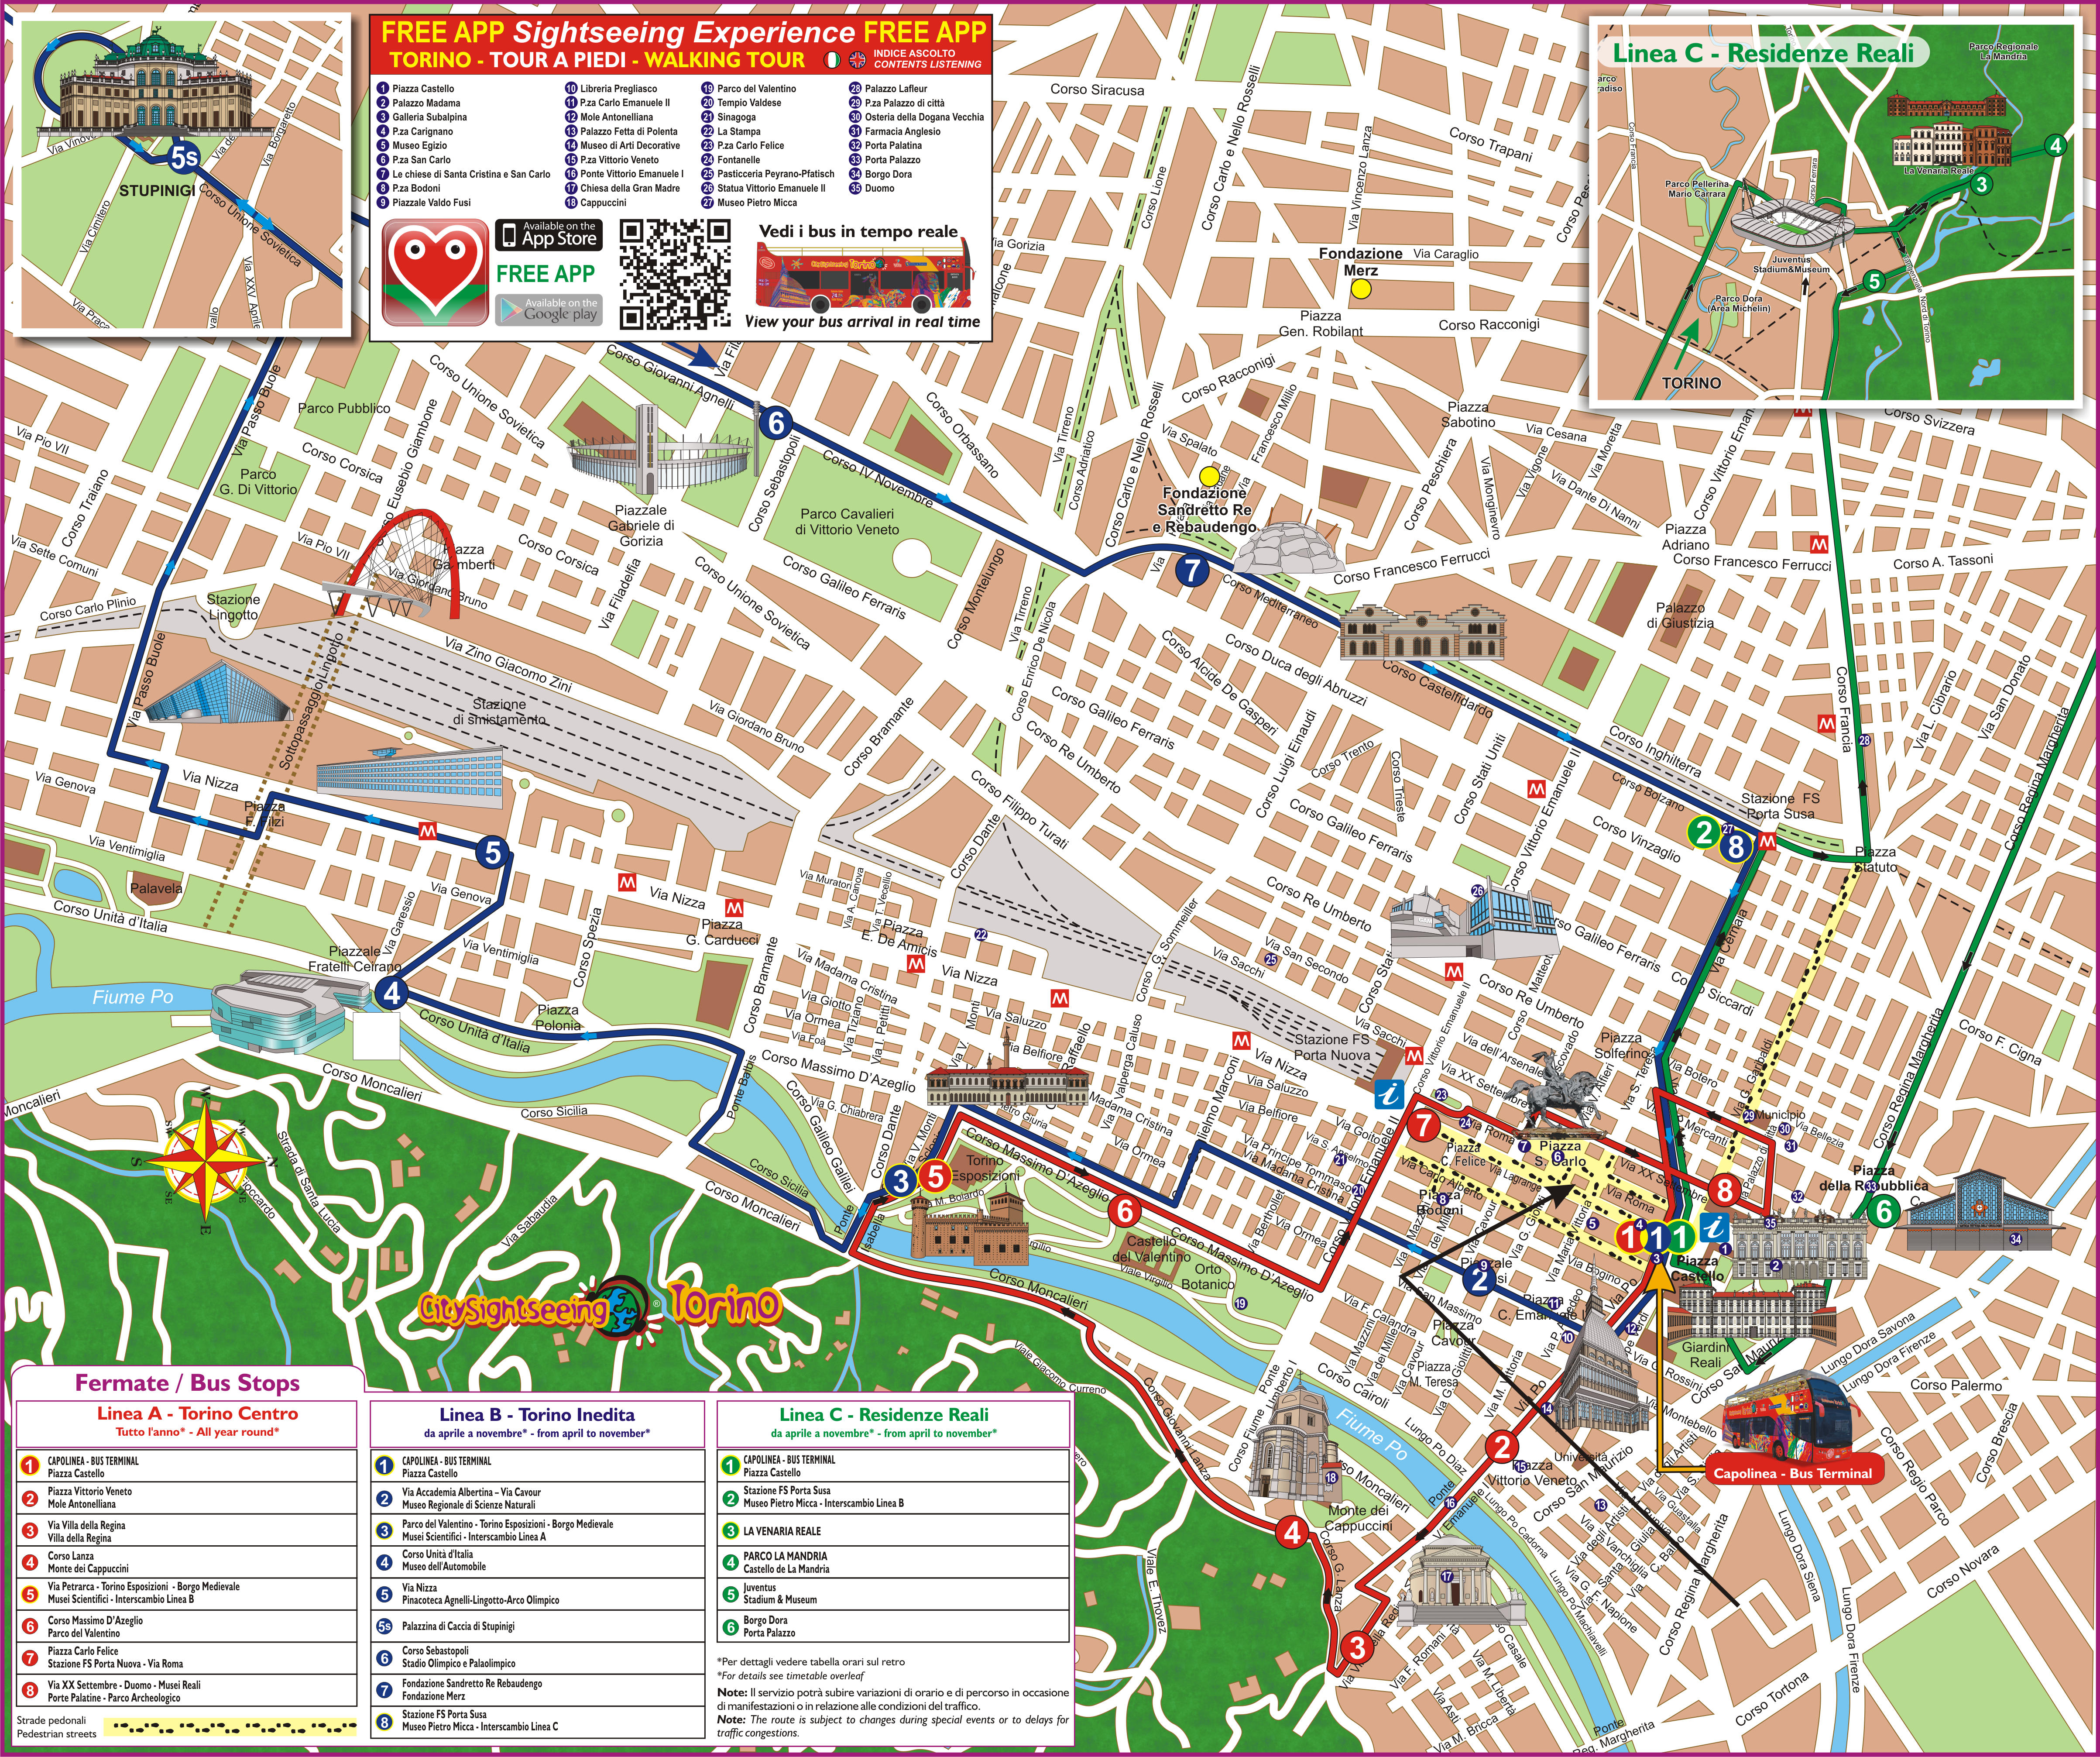 Hop-On Hop-Off Sightseeing Tour in Turin, Royal Palast, Savoy, Mole ...